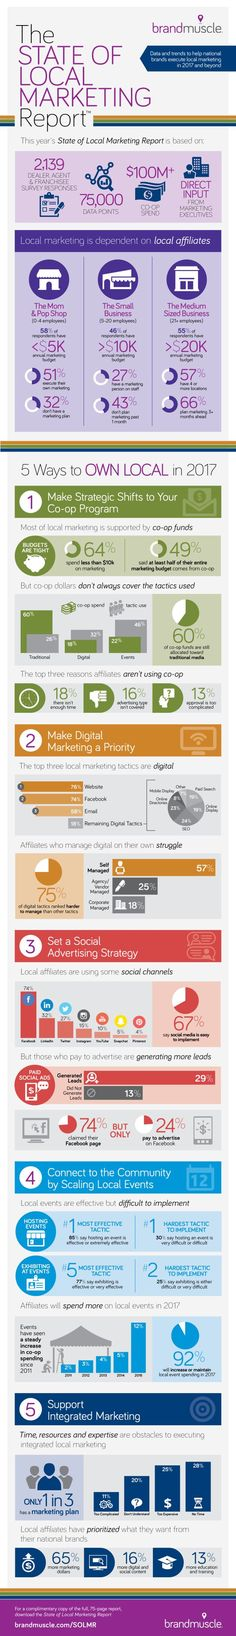 Five Ways to Conquer Local Marketing [Infographic]